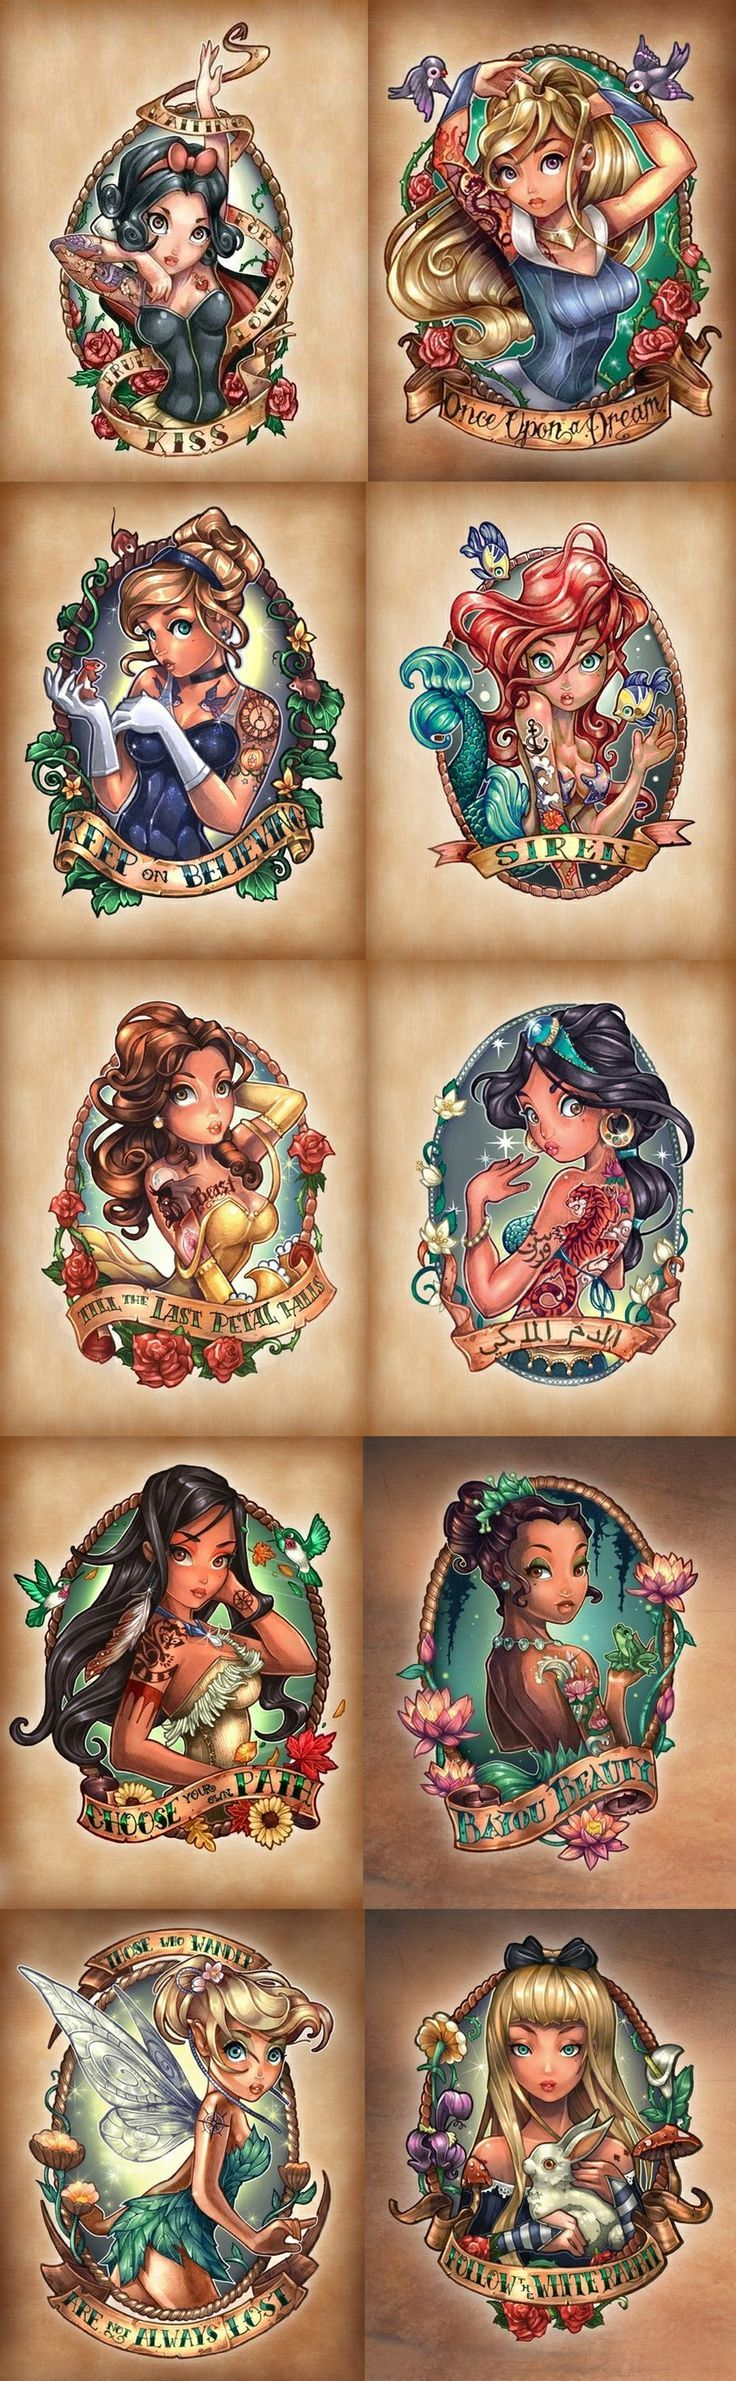 Disney Princesses as fierce vintage tattooed Pin-Ups - Disney tattoo ...